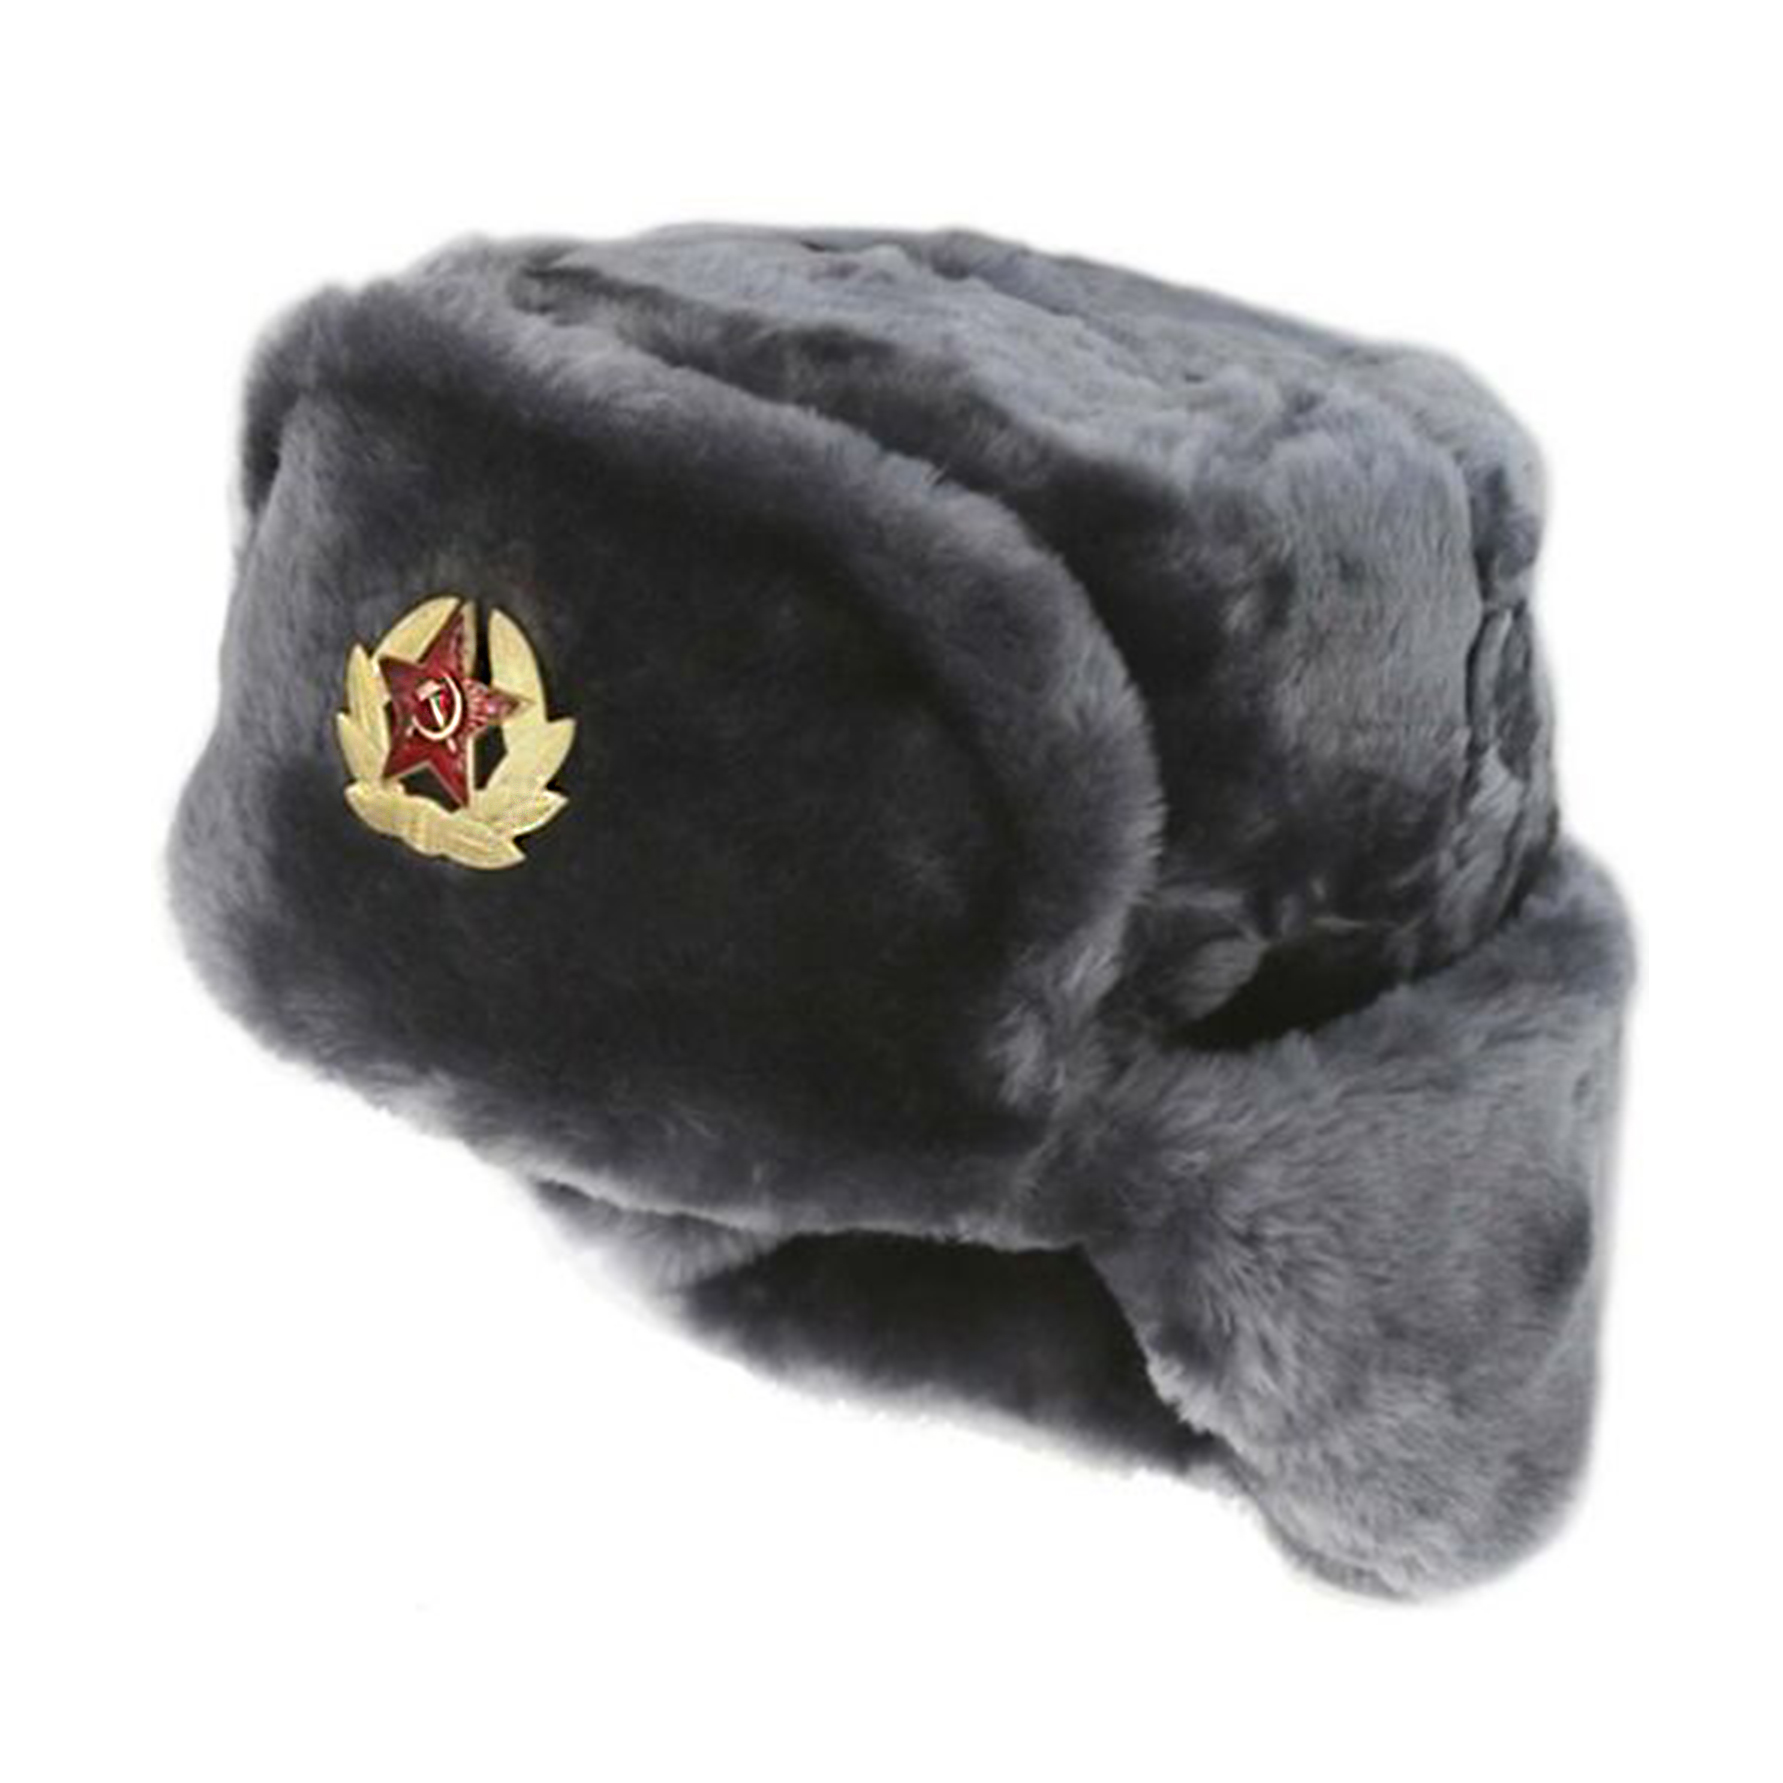 f4f83fca2c141 ... Russian Soviet Army Fur Military Cossack Ushanka Hat with Soviet Army  Soldier Insignia